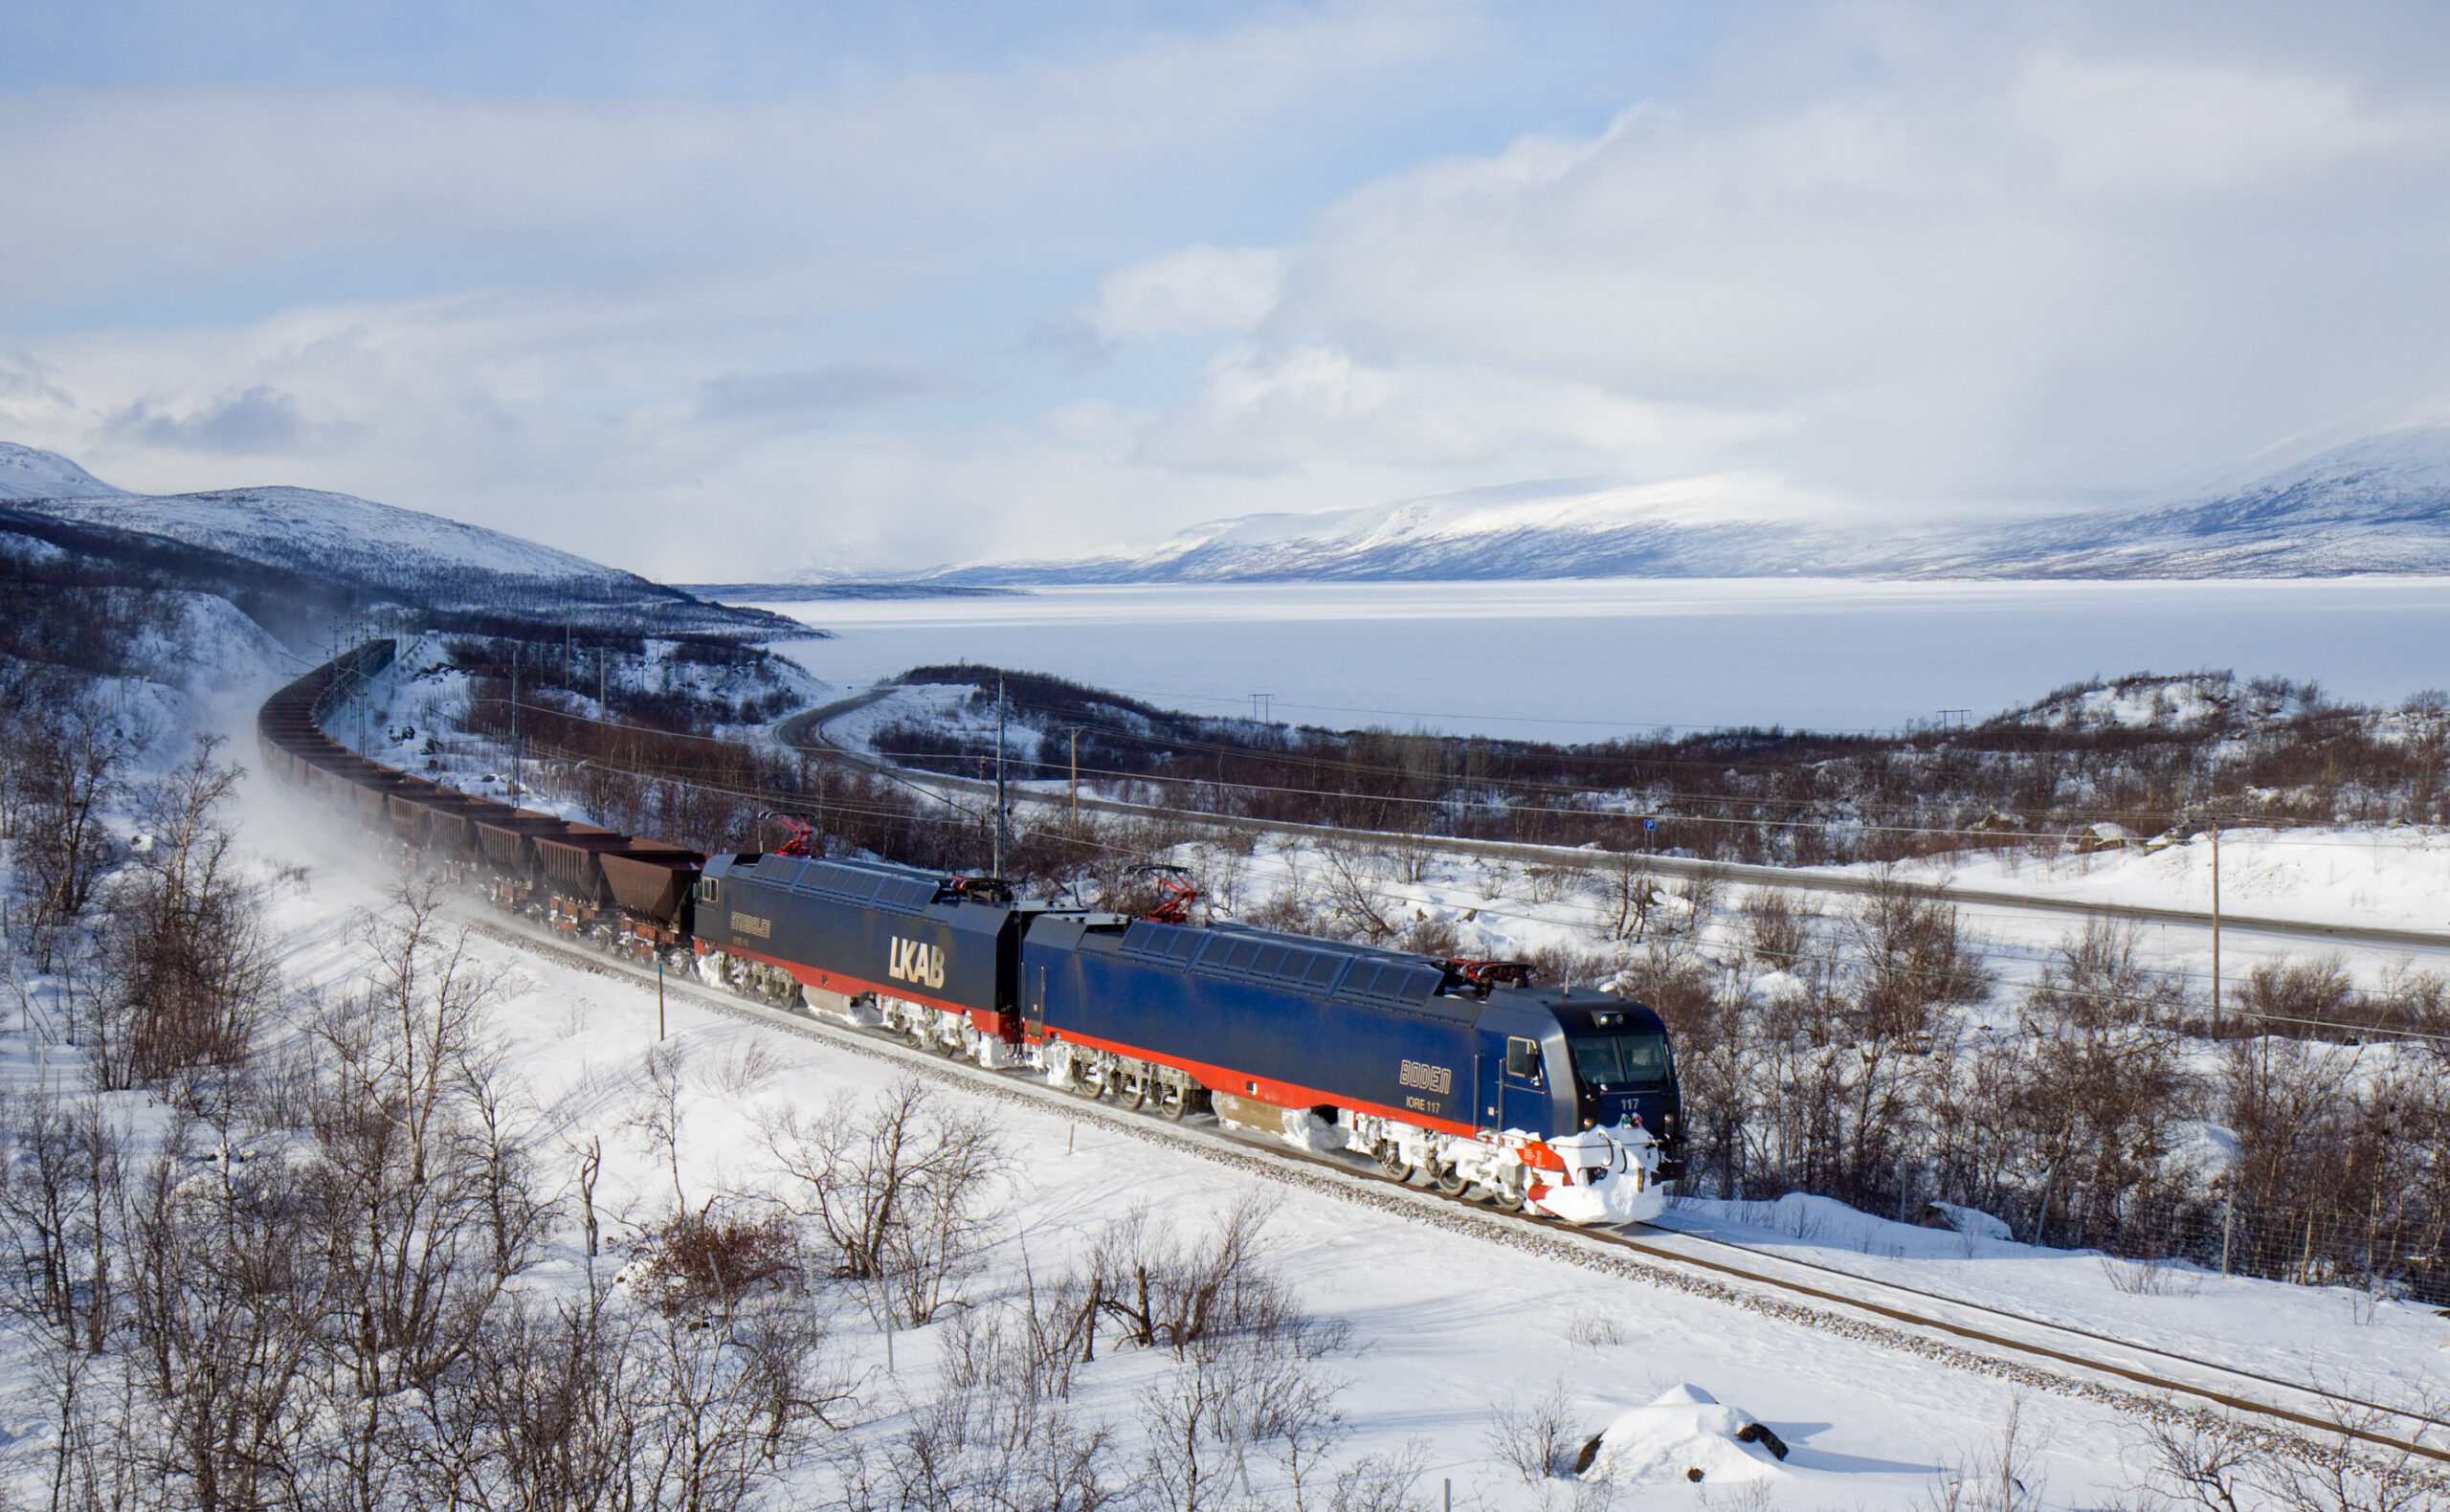 A freight train on the Malmbanen line in Sweden